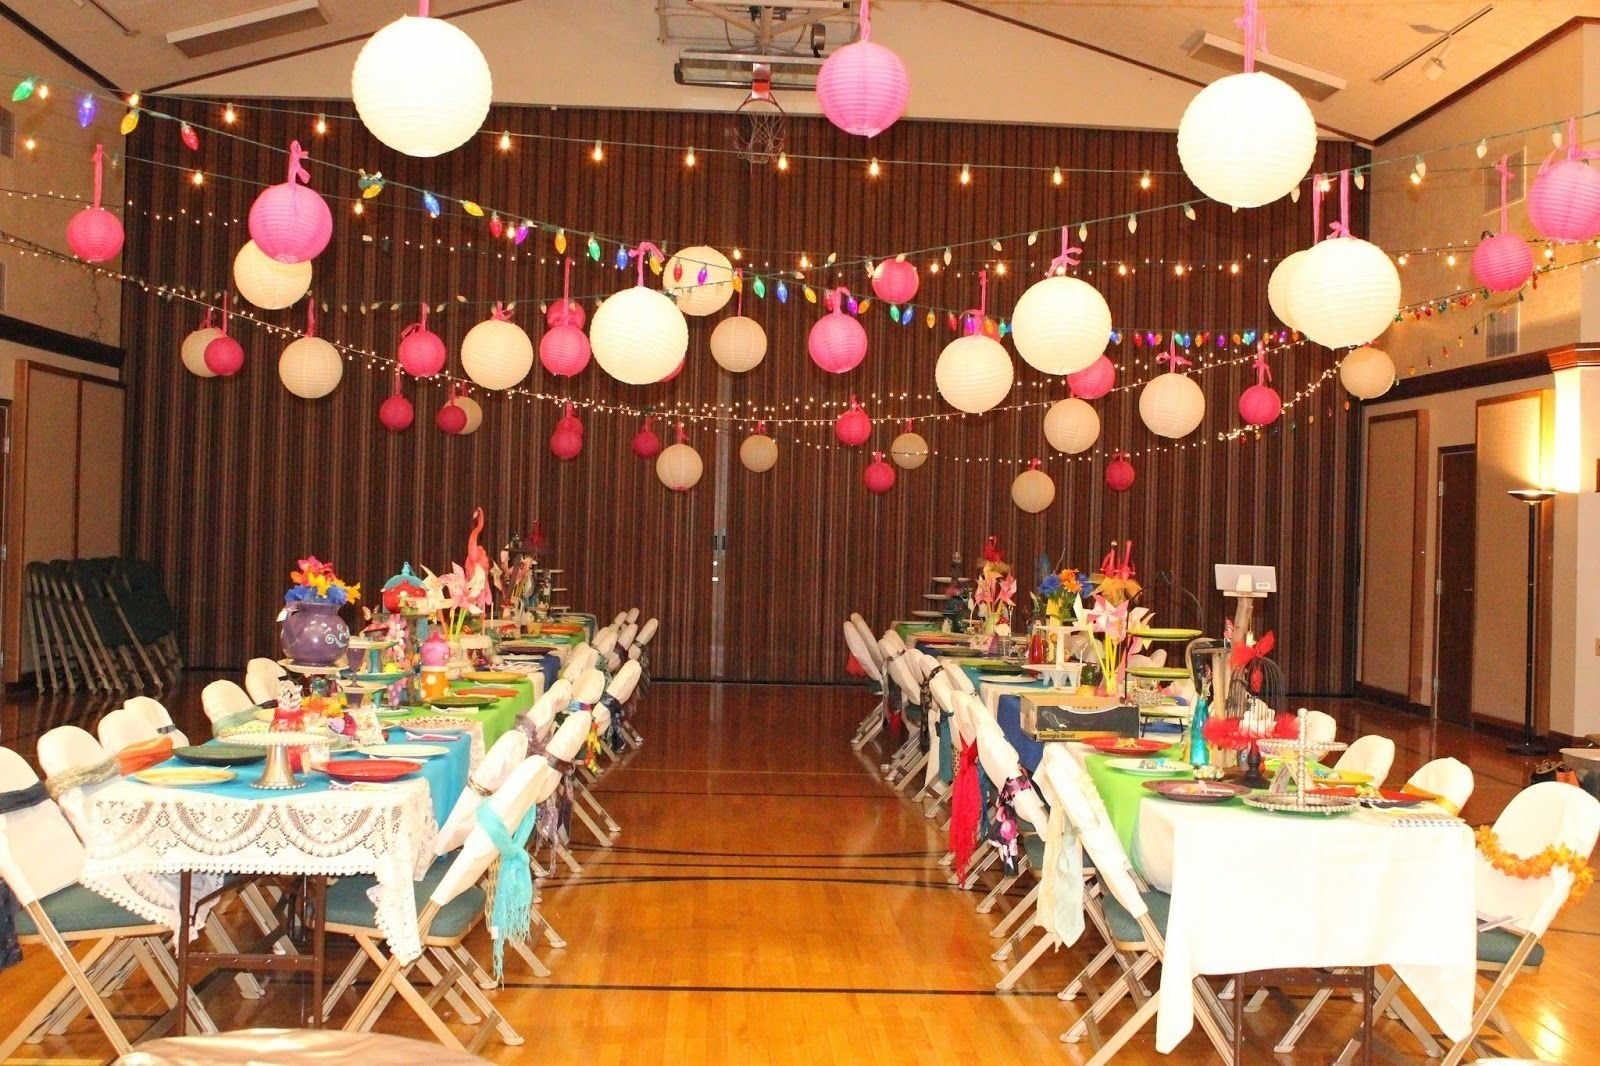 10 Cute Relief Society Birthday Party Ideas isabelle thornton le chateau des fleurs relief society birthday 2021